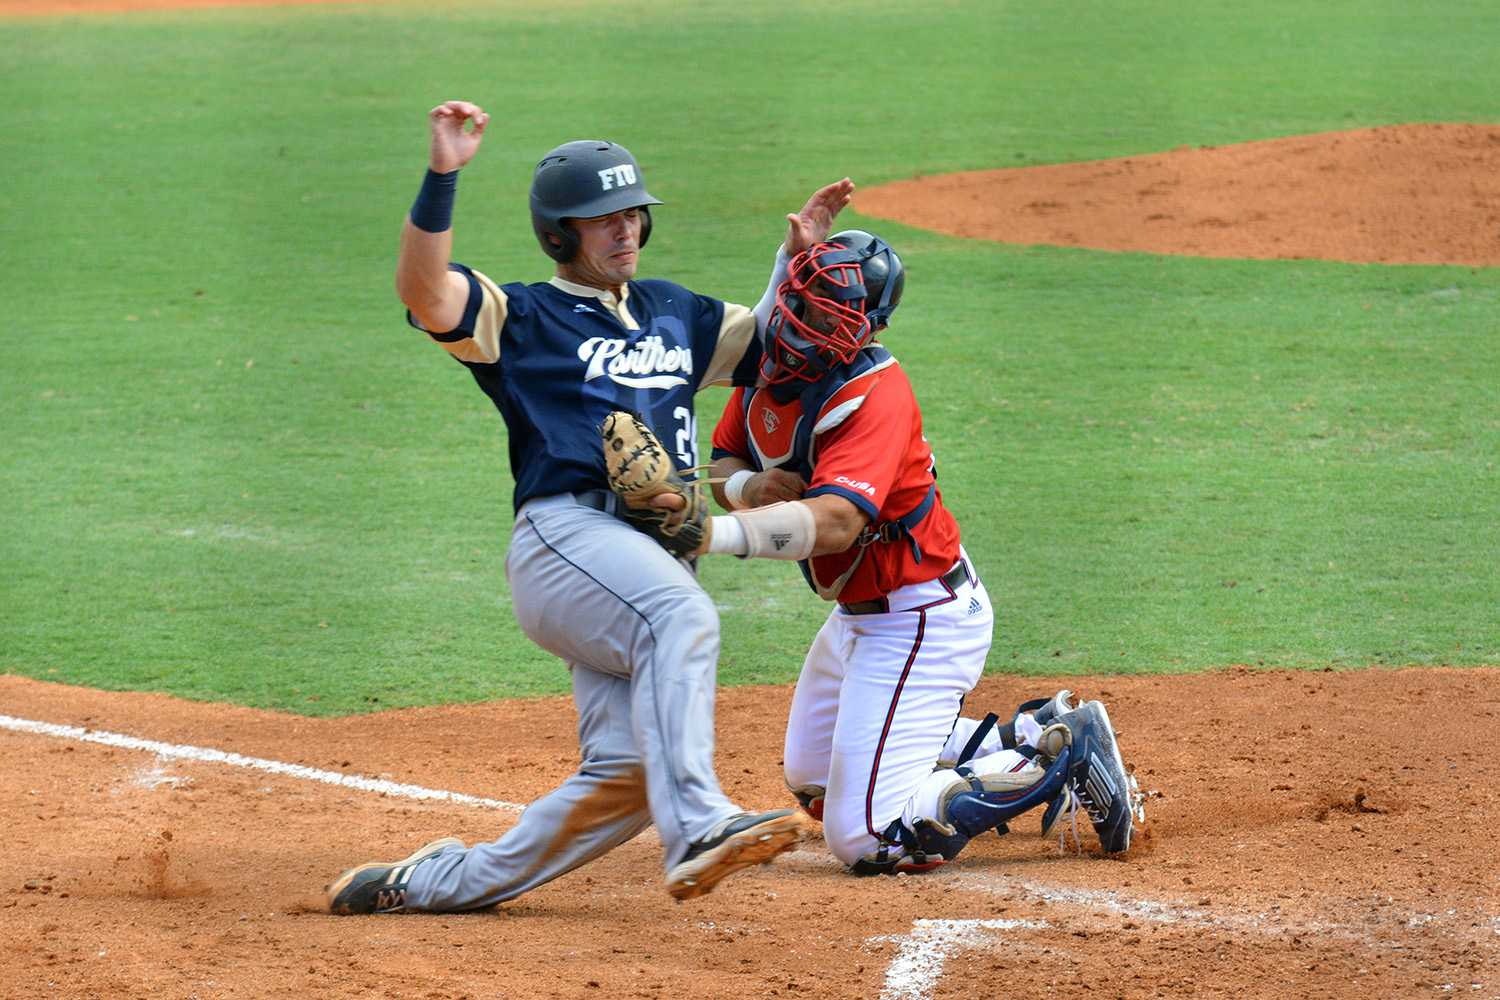 FIU attempts to score against FAU early in Saturday's matchup. FAU came back to win the game 8-3 thanks to a powerful sixth inning for the Owls. Michelle Friswell | Associate Editor